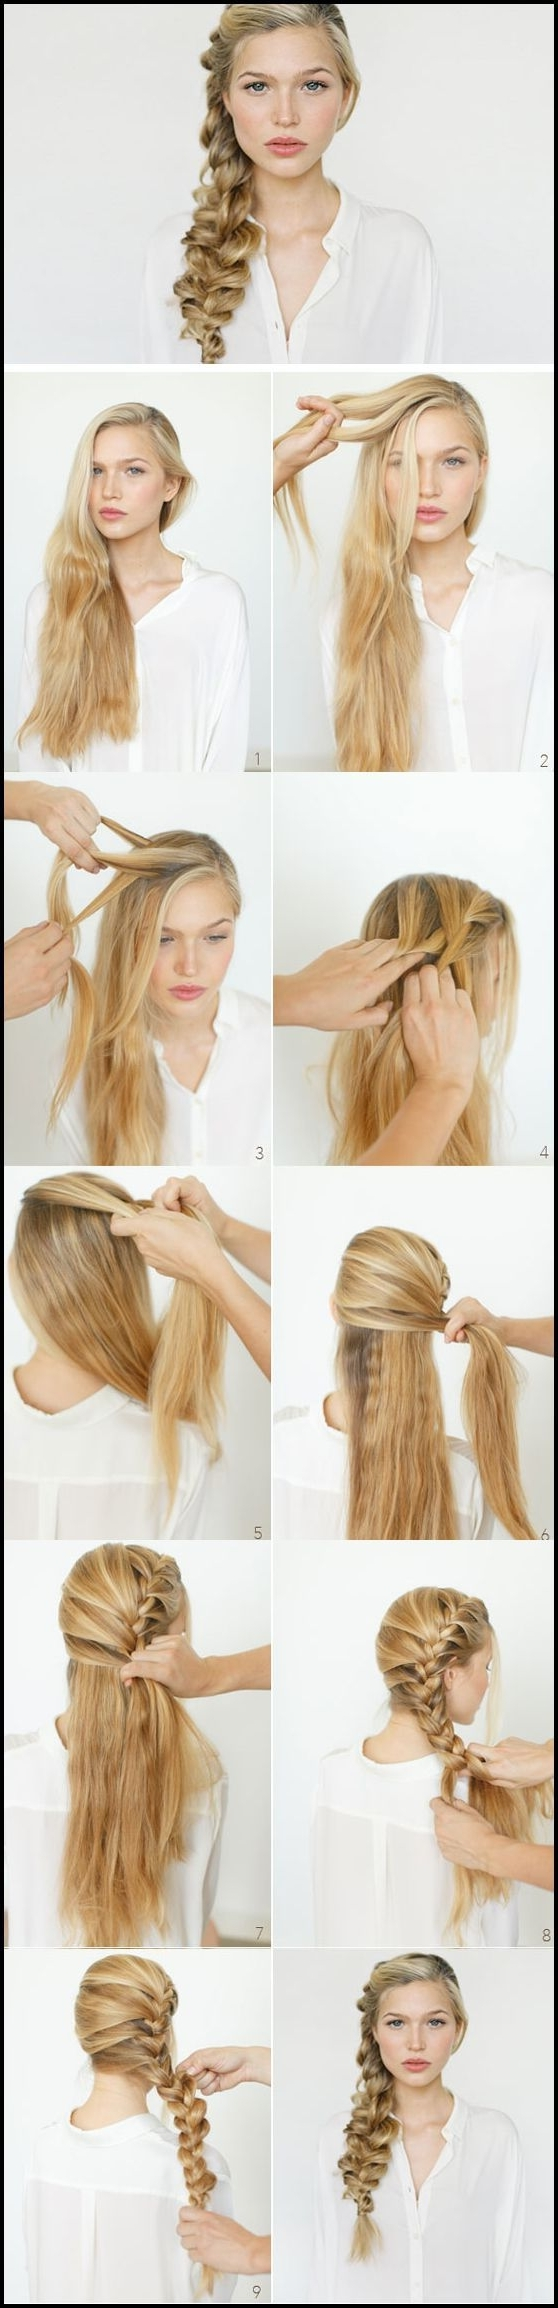 Easy Diy Wedding Hairstyles For Long Hair #frisuren #hairstyles 25+ In Well Known Diy Wedding Hairstyles For Long Hair (View 9 of 15)